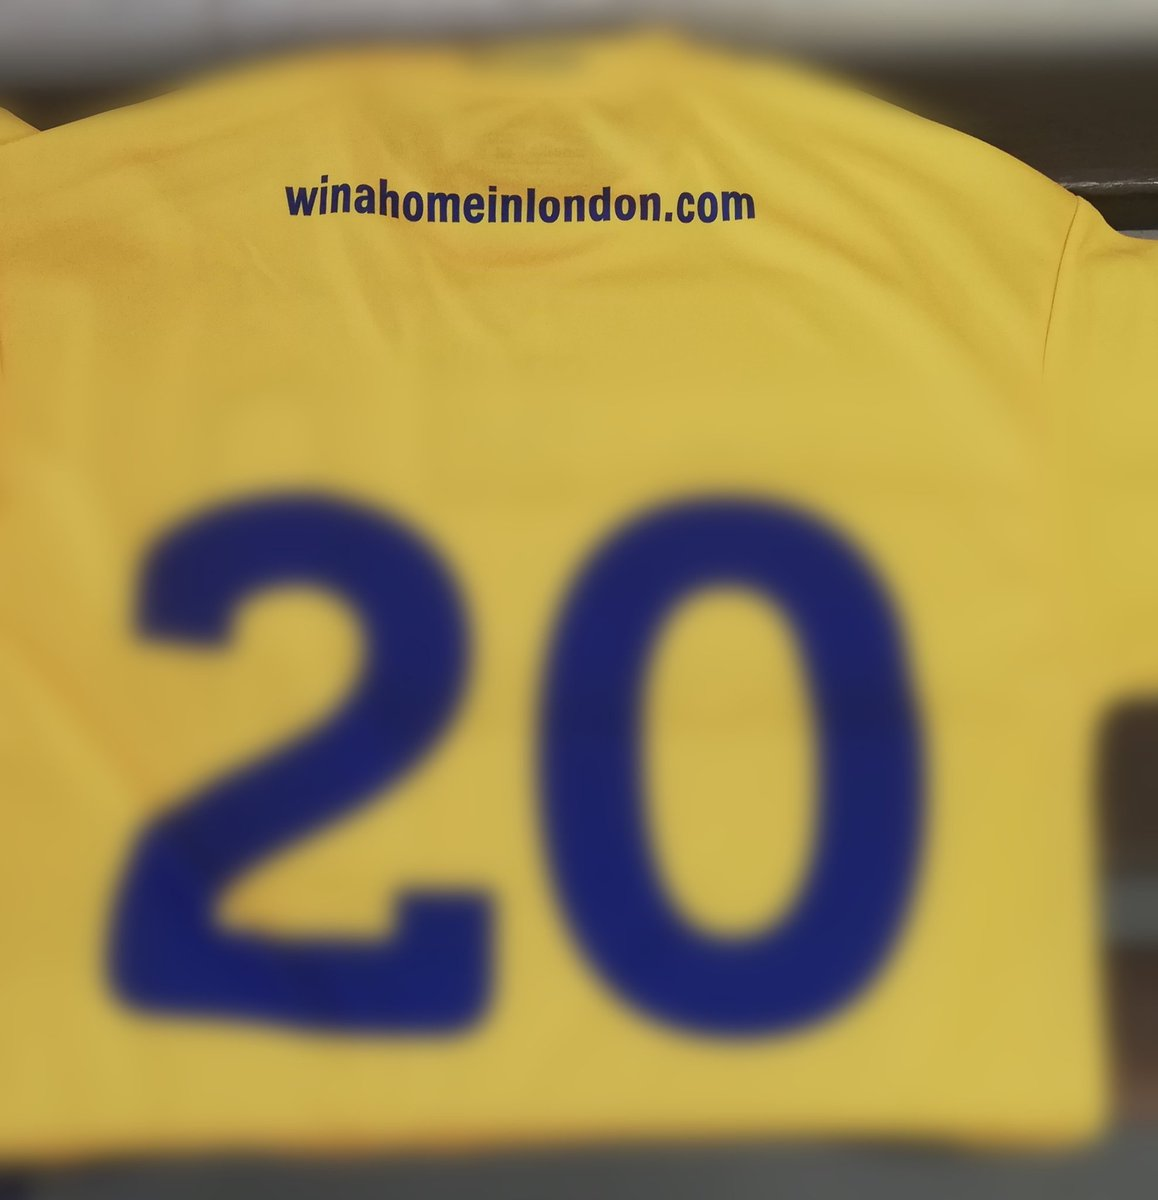 test Twitter Media - Have you seen the back of our jersey? #winahomeinlondon #rosgaa #gaa buy a ticket now just click on  https://t.co/Rgb0sOe9jV https://t.co/hs13JOGQuH